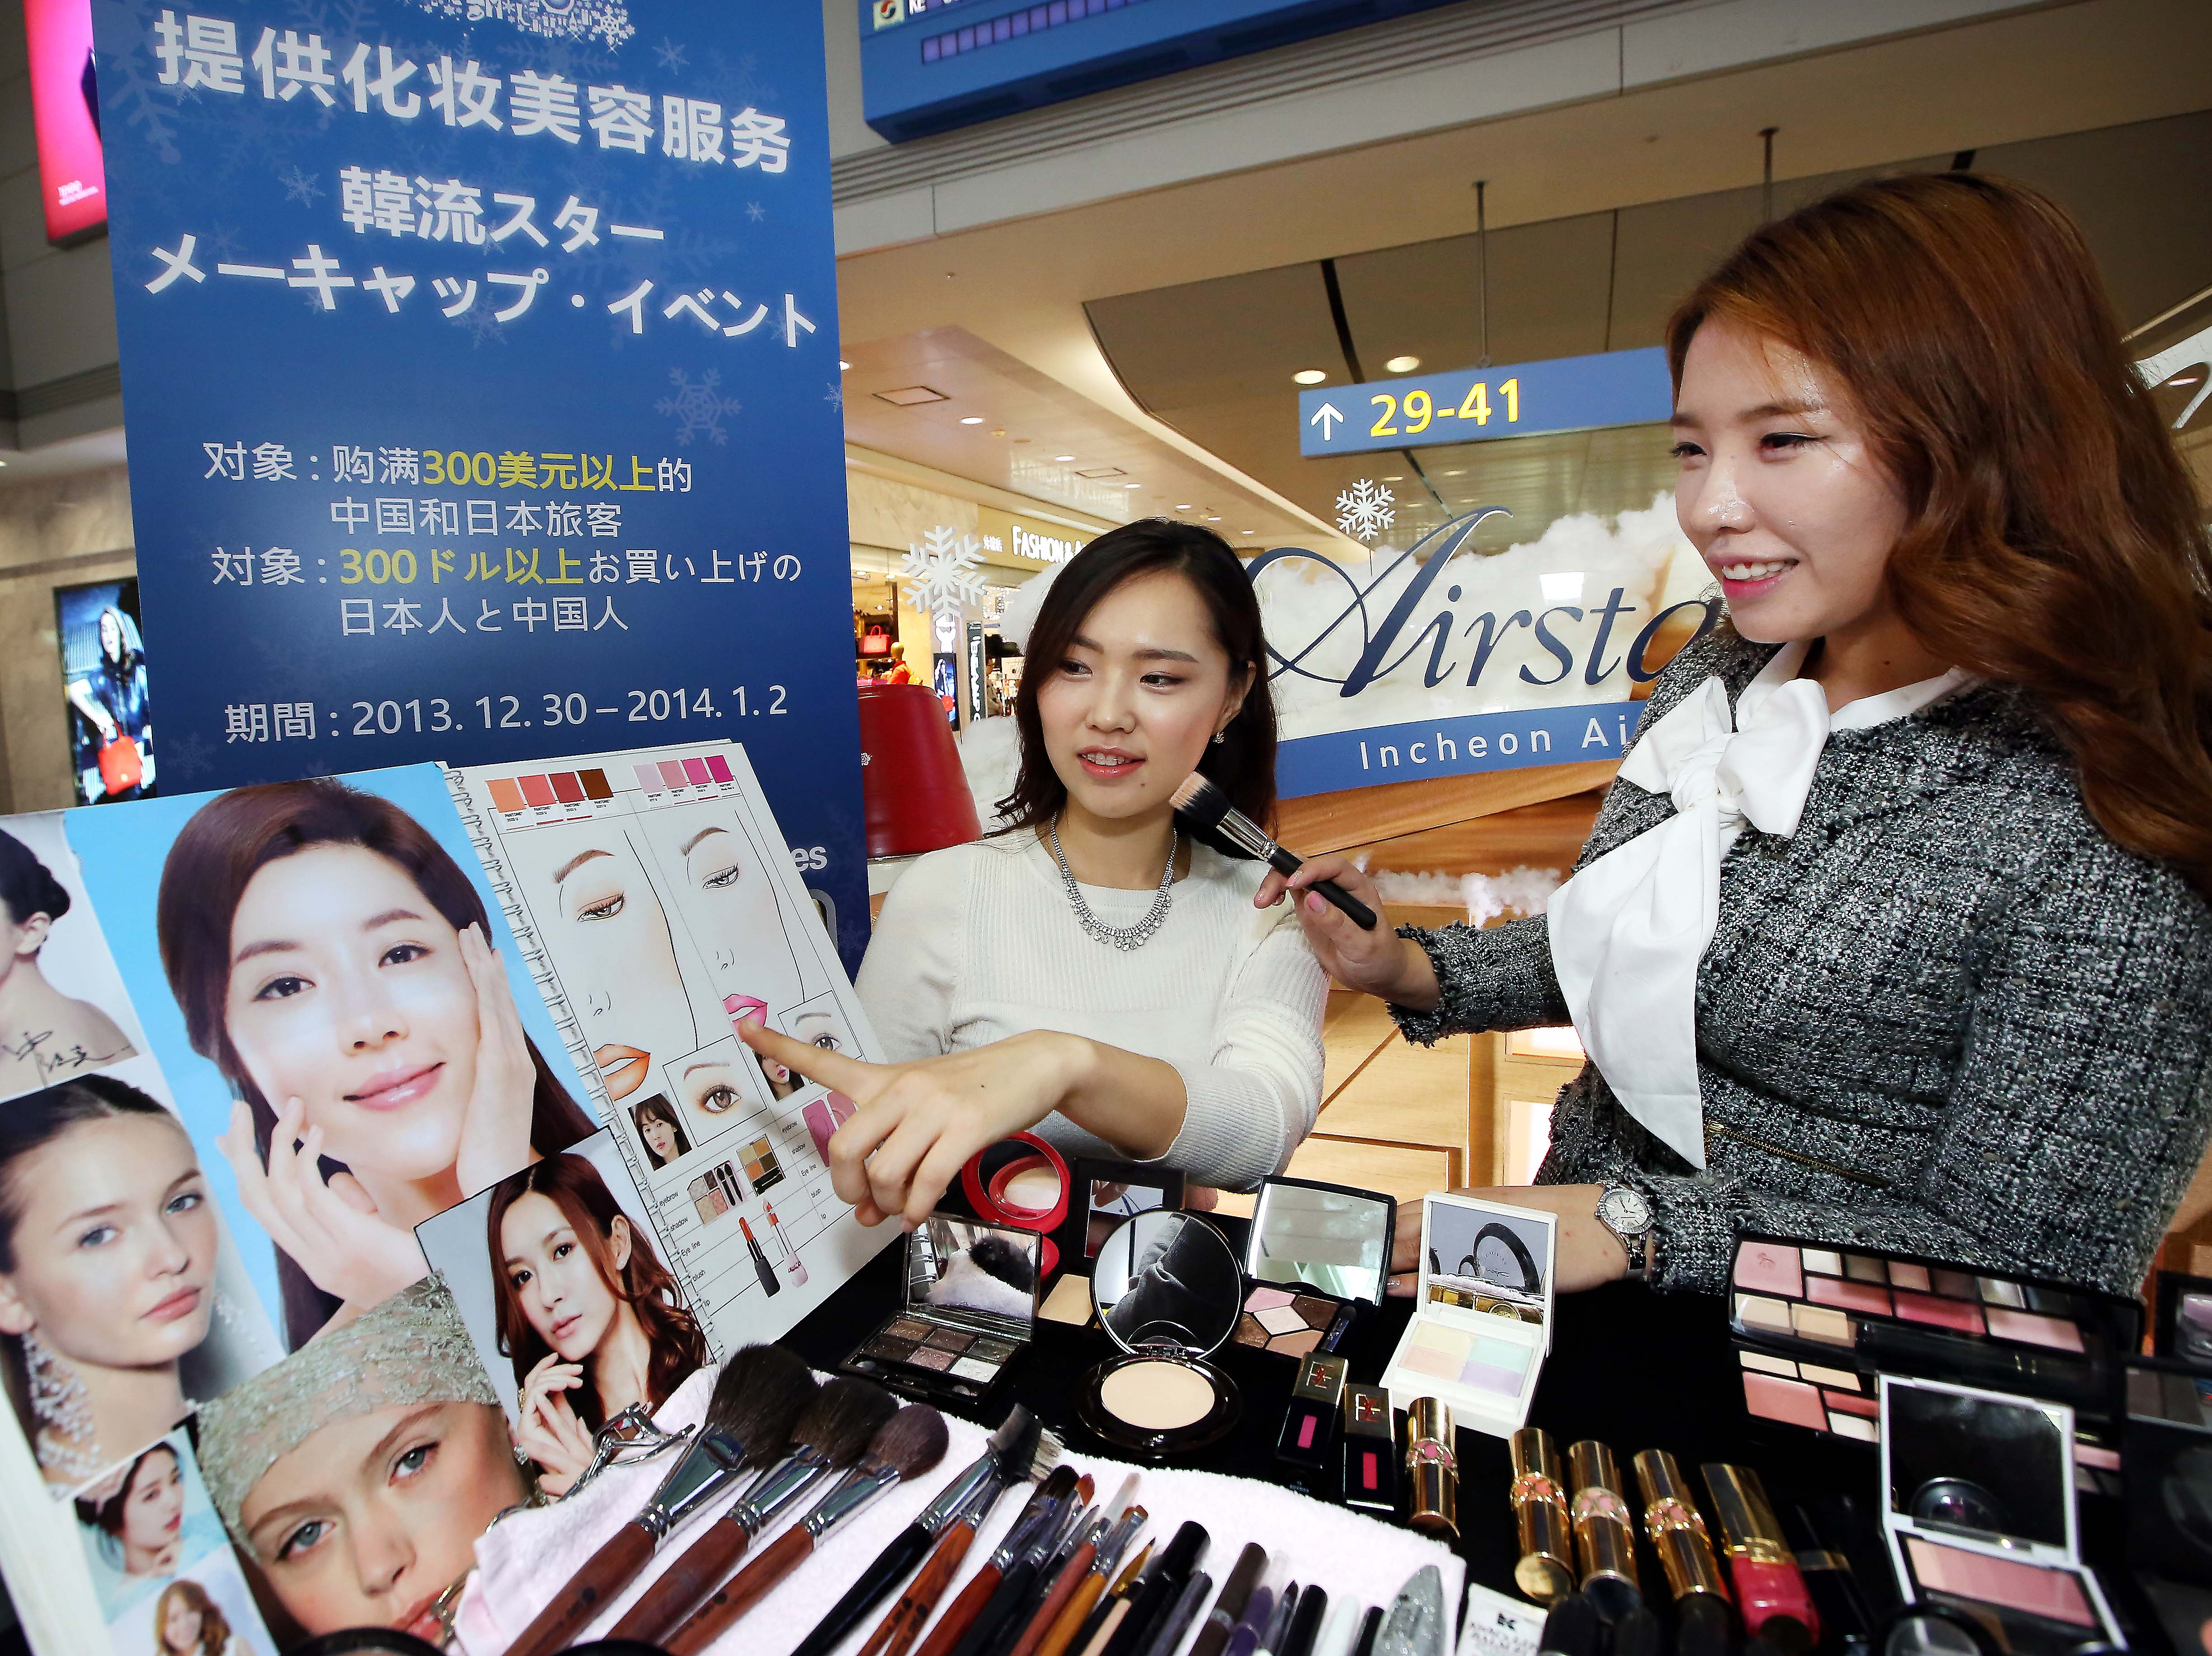 AIRSTAR Avenue, the duty-free shopping space at the Incheon International Airport, holding makeup experiencing event for the Chinese tourists. It will provide tourists with chances of receiving Korean celebrity-like makeup service and tips from famous makeup artists. Tourists may participate in the event by submitting receipts in value of US$300. (image credit: AIRSTAR Avenue/marketwired)